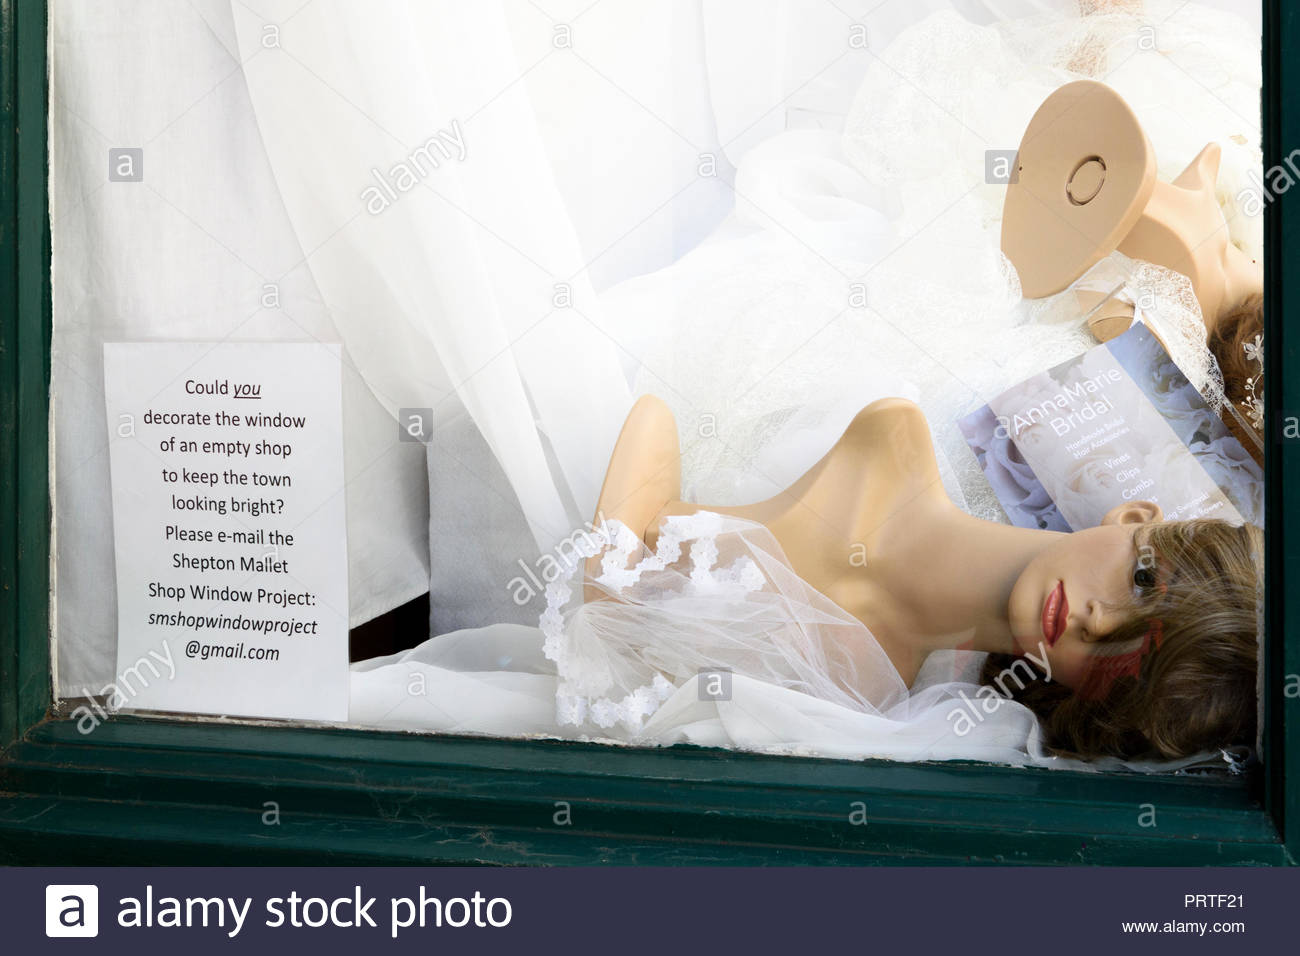 Fallen Dummies Stock Photos & Fallen Dummies Stock Images